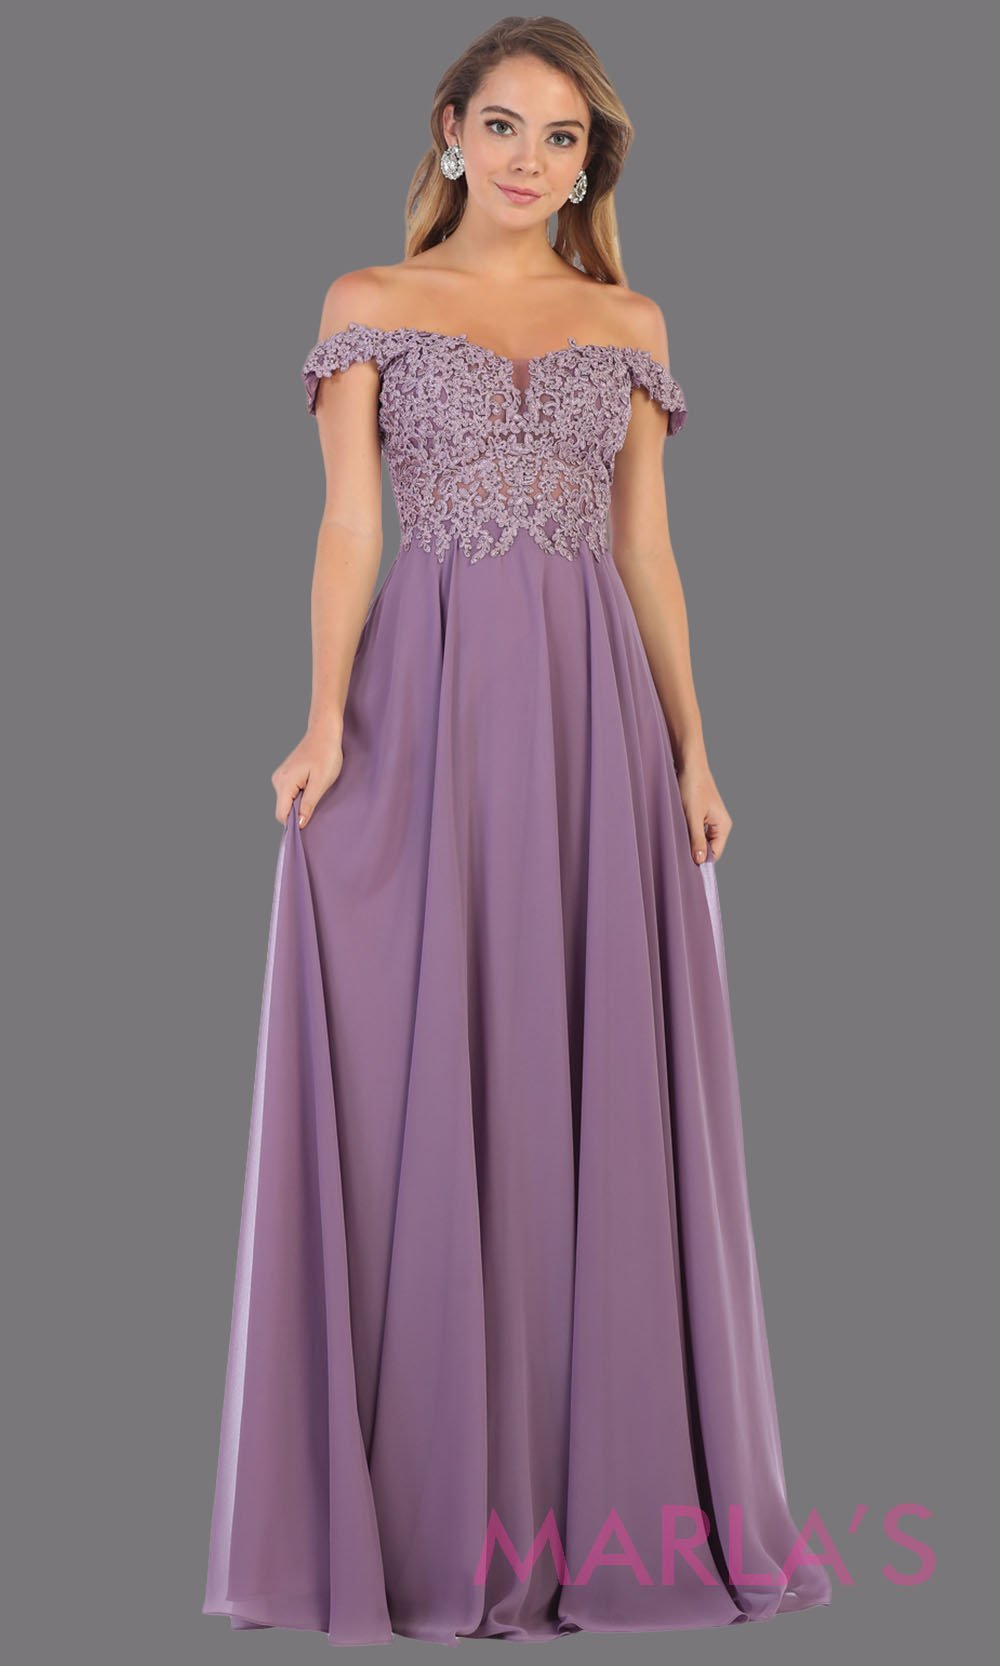 Long flowy lilac off shoulder dress with corset and lace top. This light purple gown is perfect for bridesmaids, simple wedding guest dress, formal party, plus size wedding guest dress, modest gown, indowestern gown